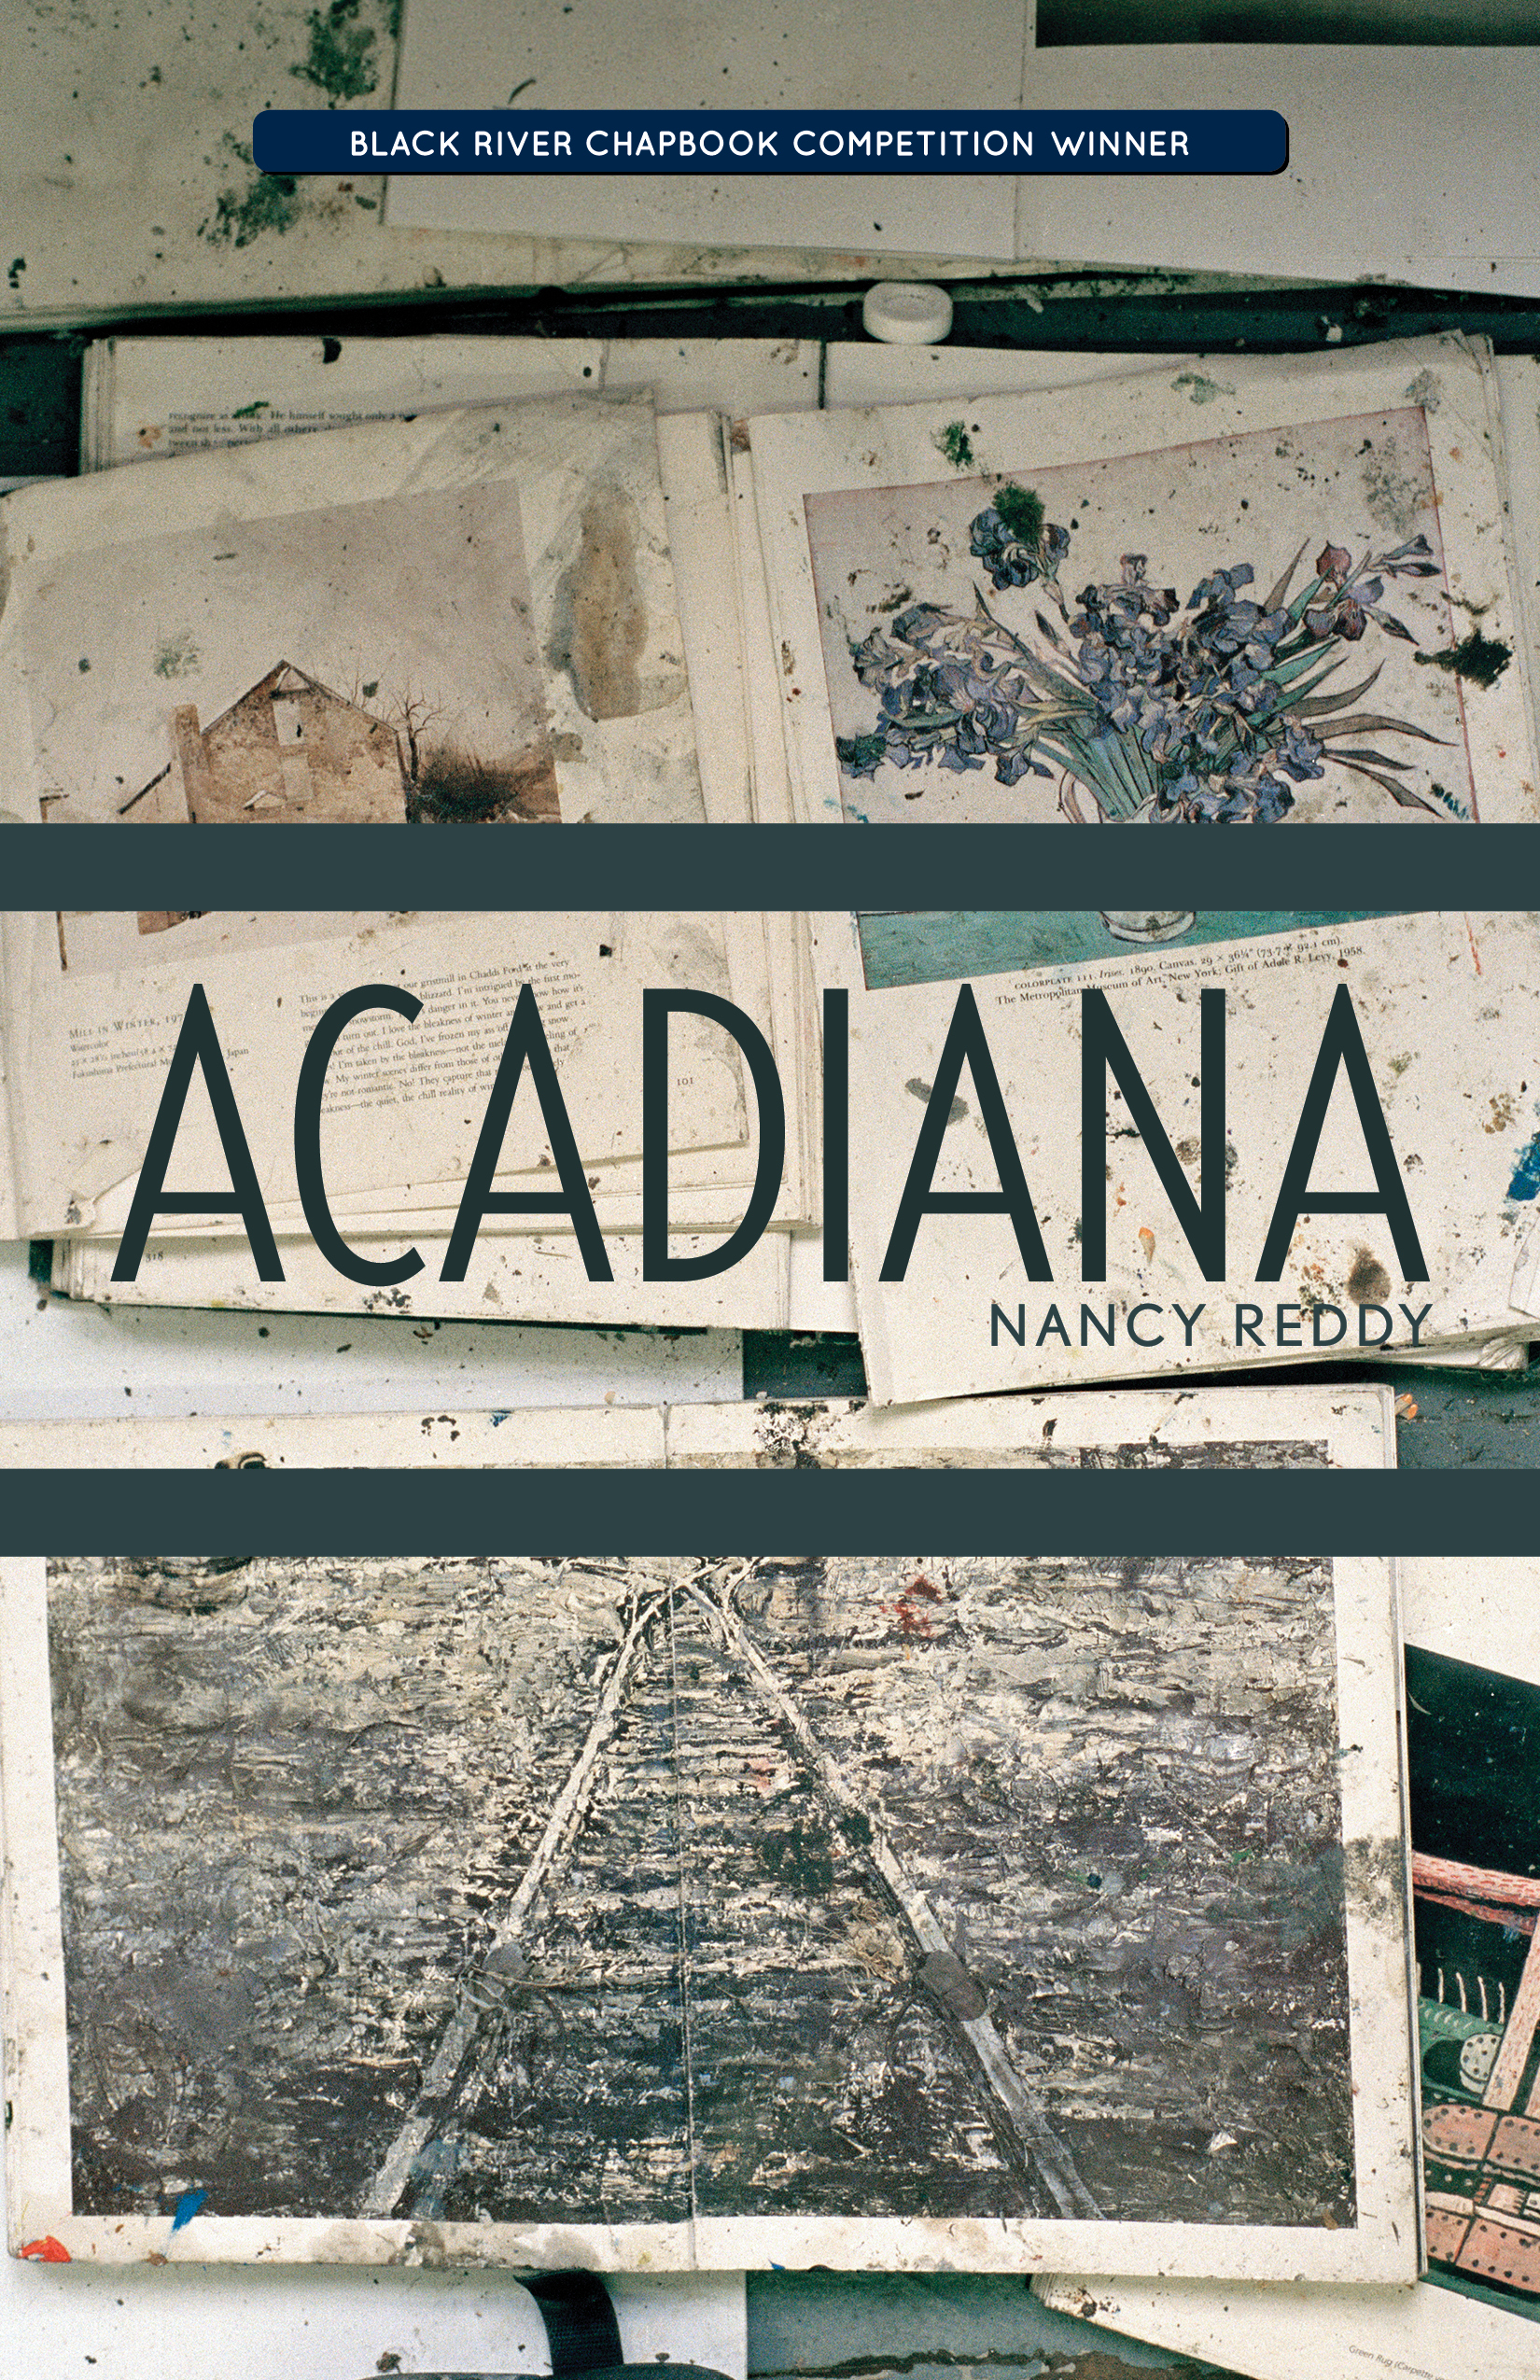 Nancy Reddy On Acadiana The Cloudy House